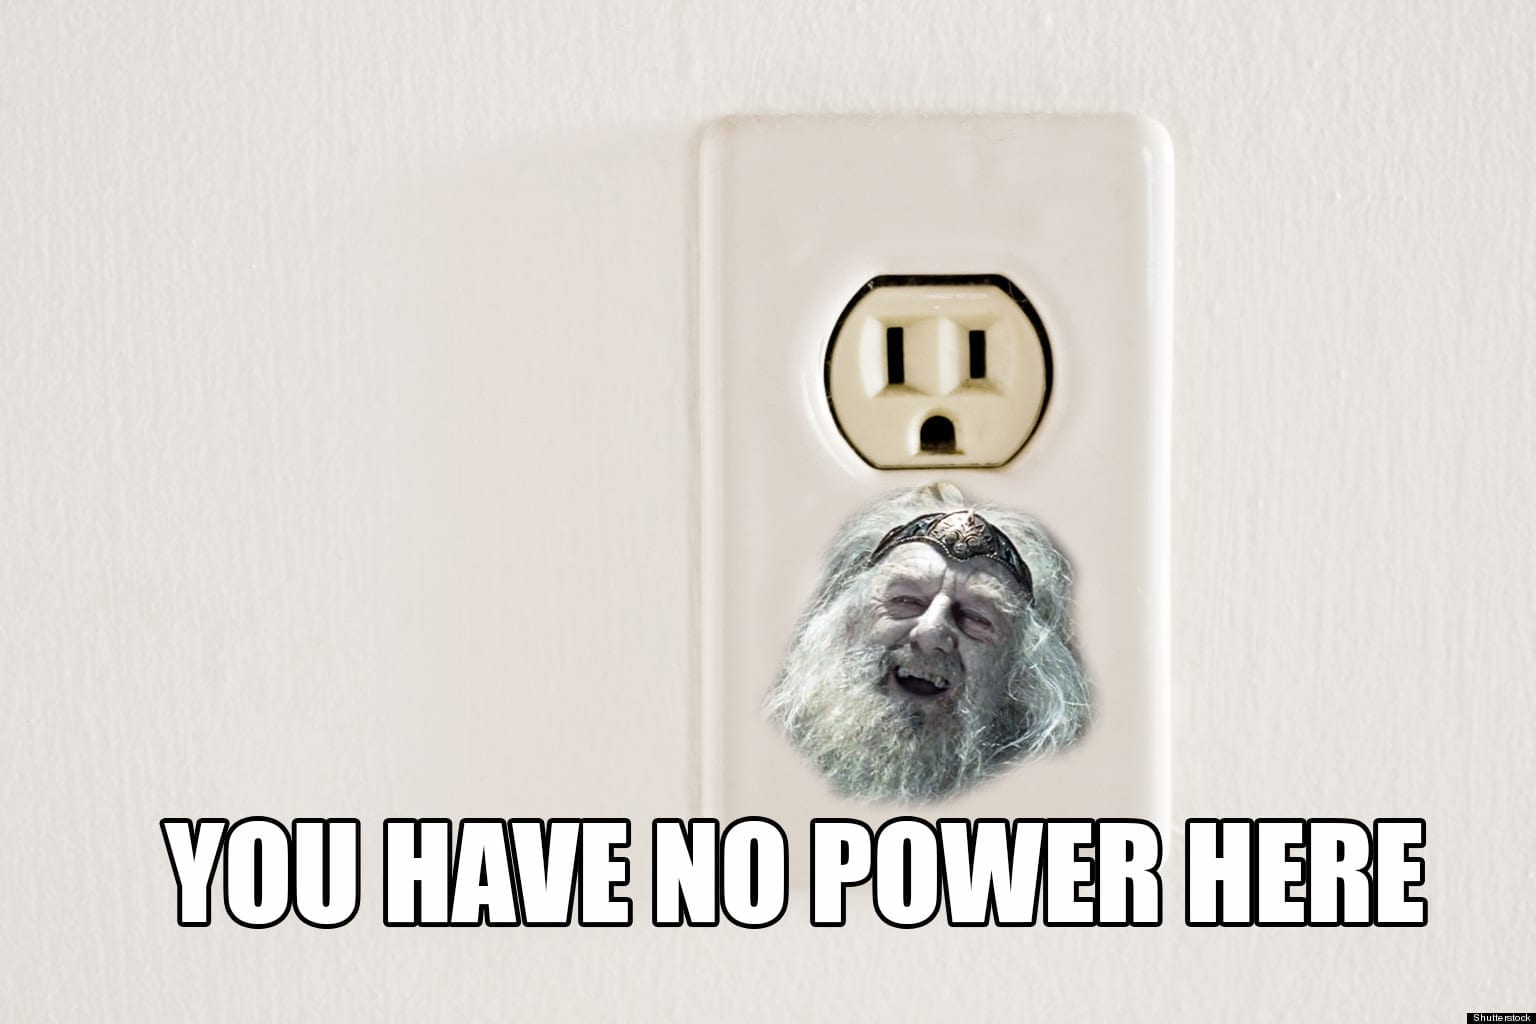 no-power-here